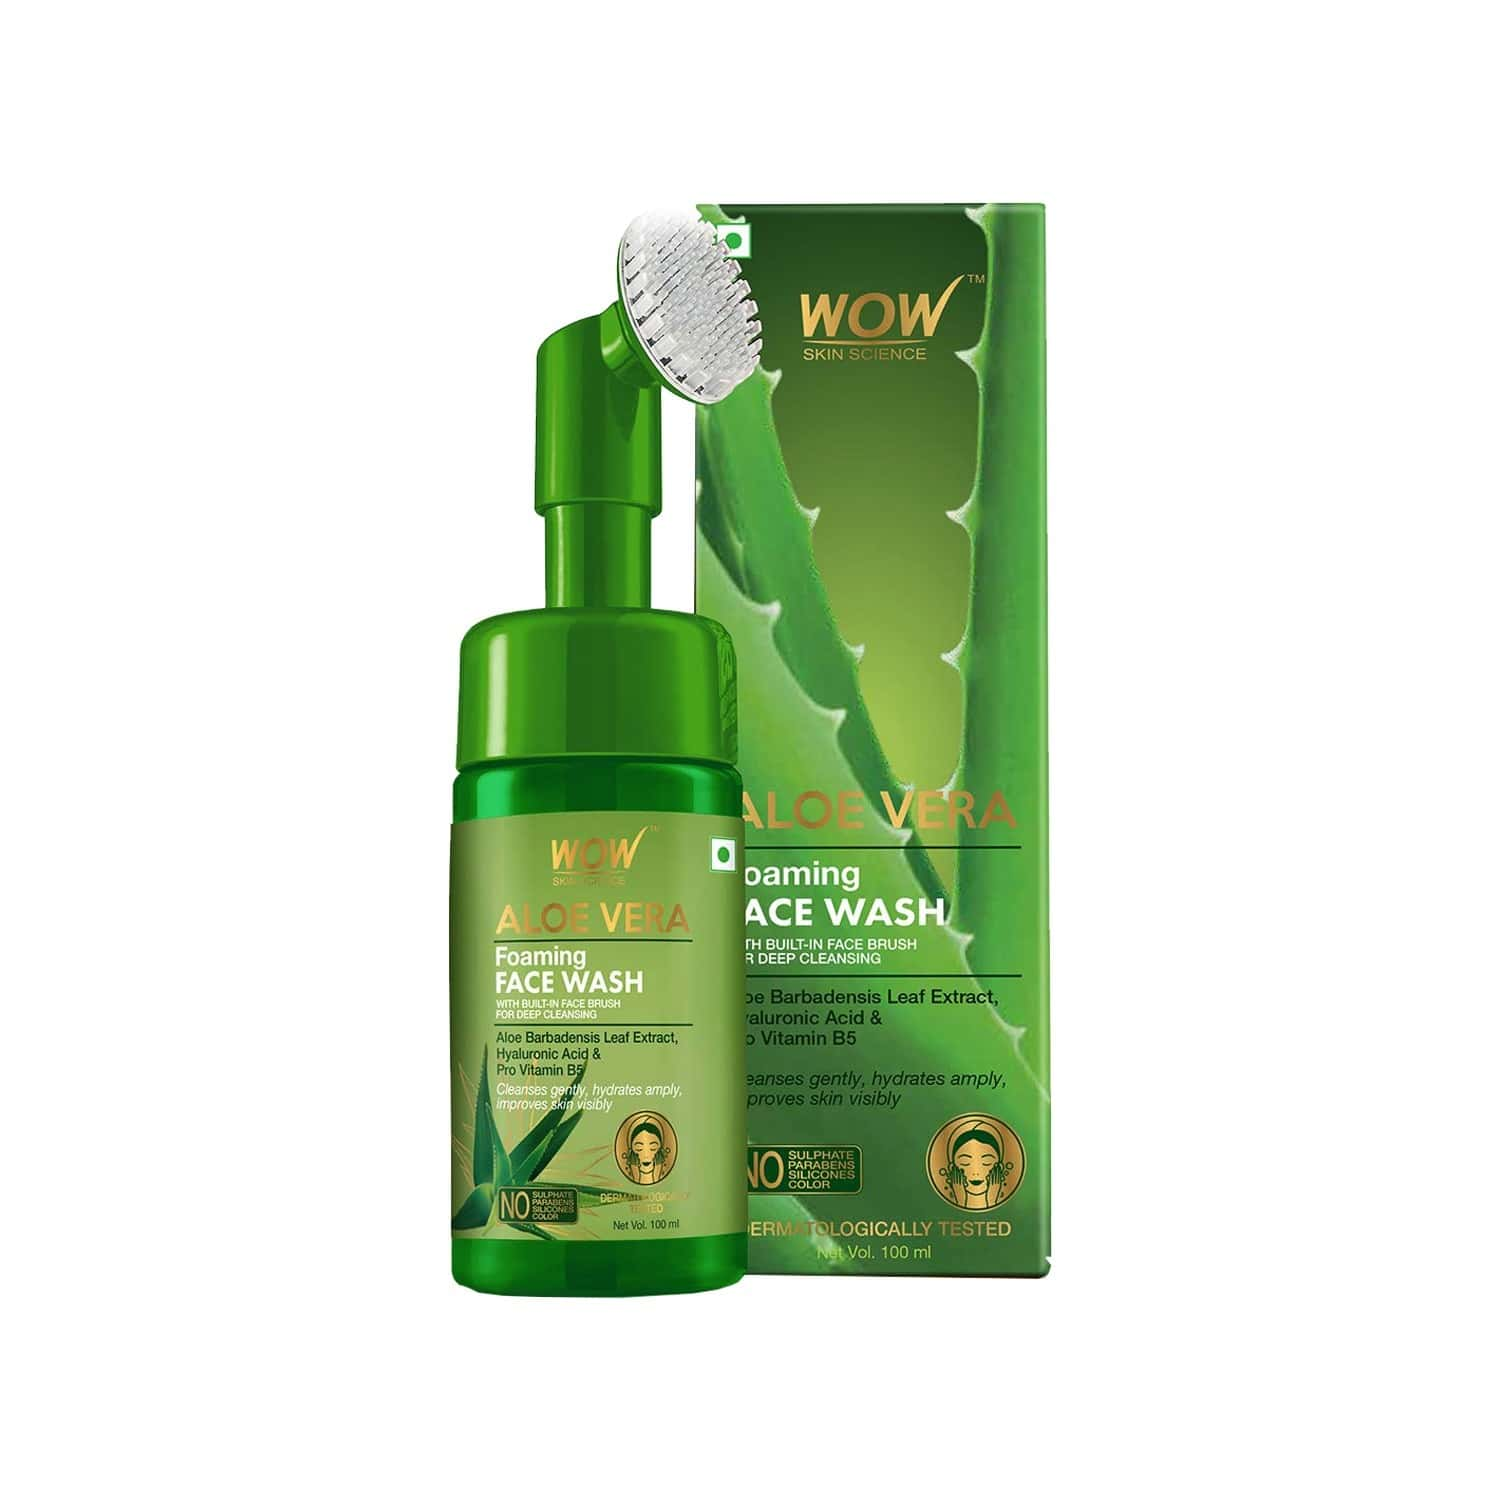 Wow Skin Science Aloe Vera Foaming Face Wash ( With Brush ) - 100ml